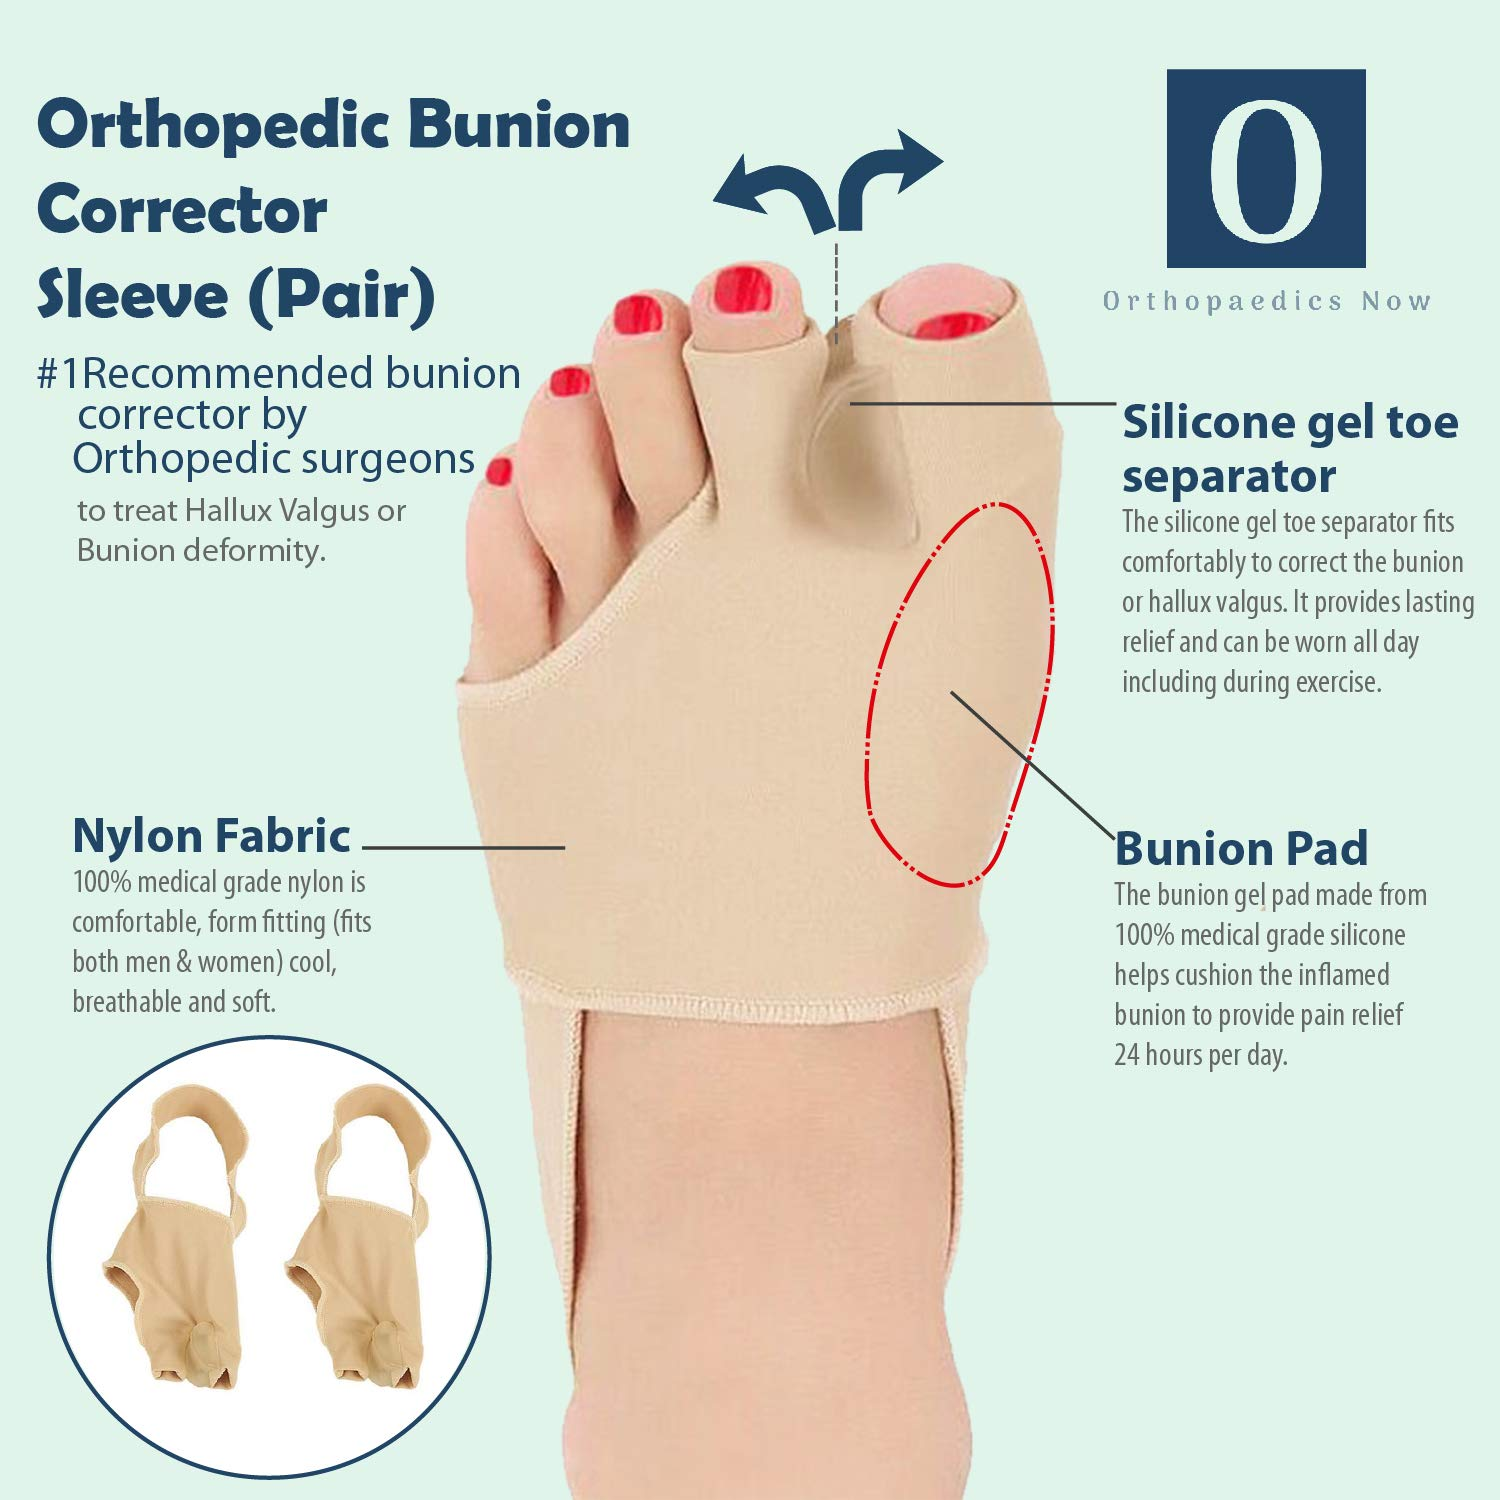 Amazon.com: Orthopedic Bunion Corrector | Bunion Relief | Bunion Splint | Big Toe Straightener with Bunion Pads - Bunion Corrector Sleeve, Hallux Valgus, ...